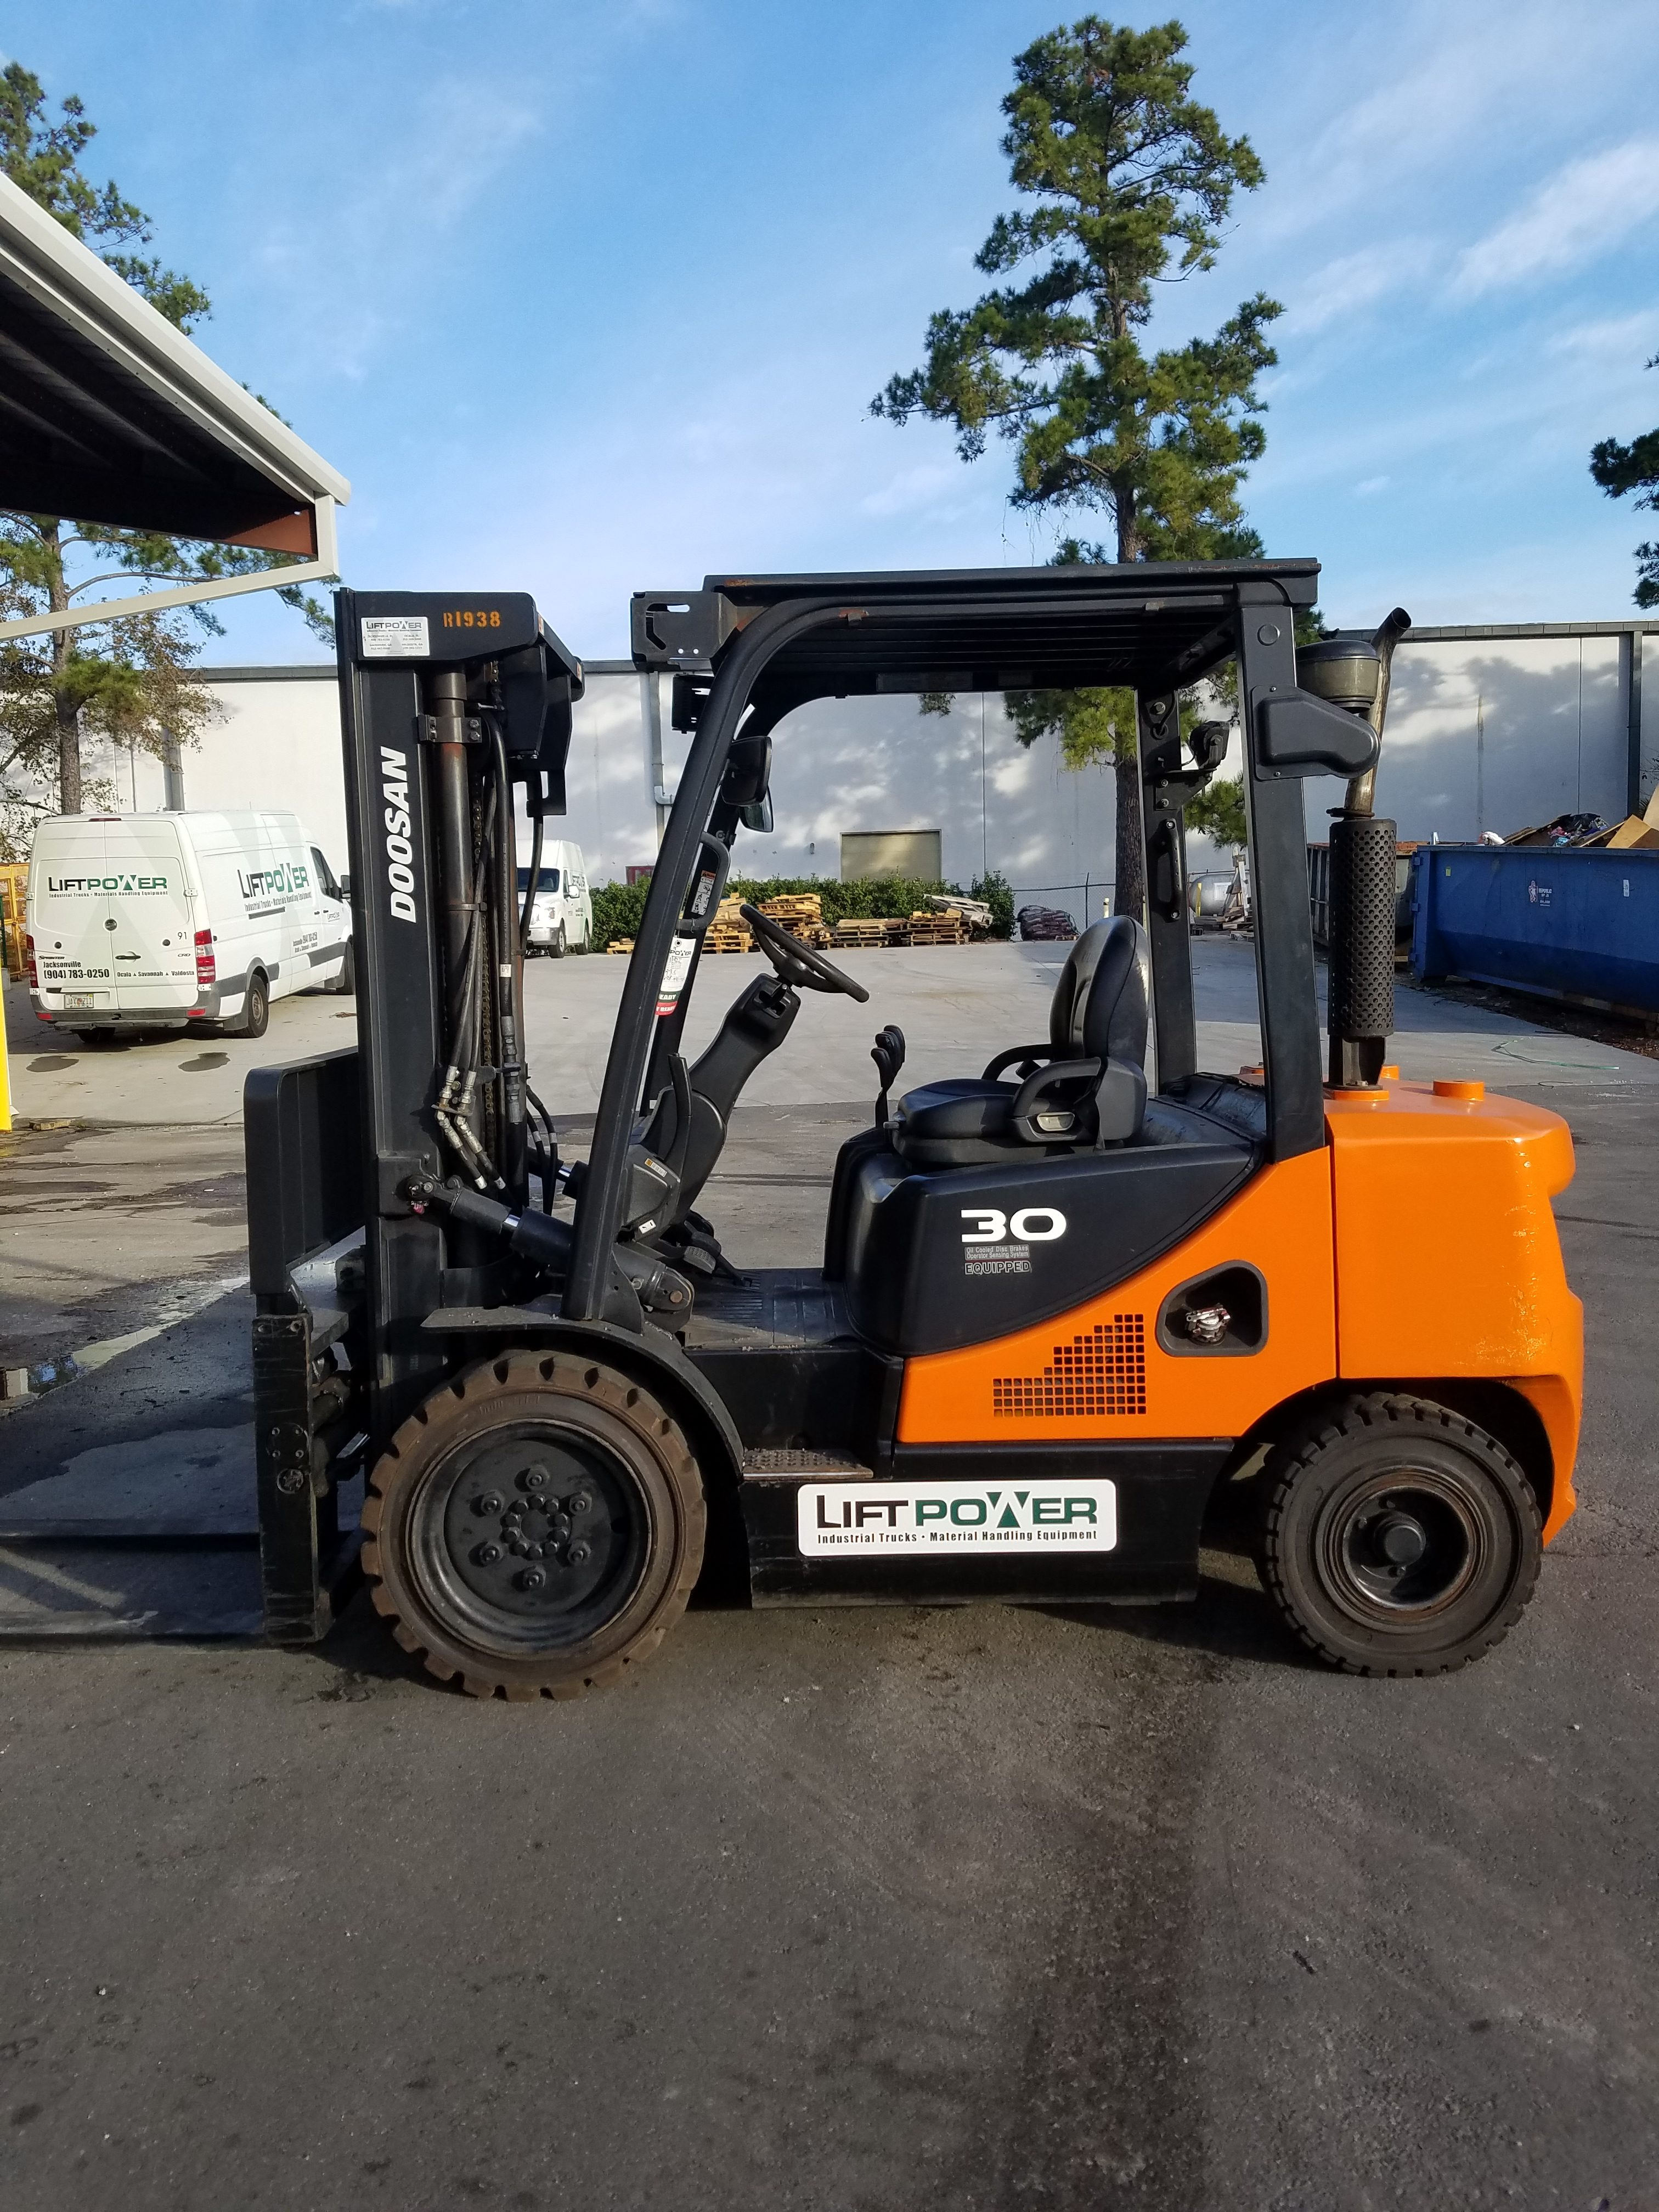 Doosan D30s 7 Used Forklift Lift Power Florida